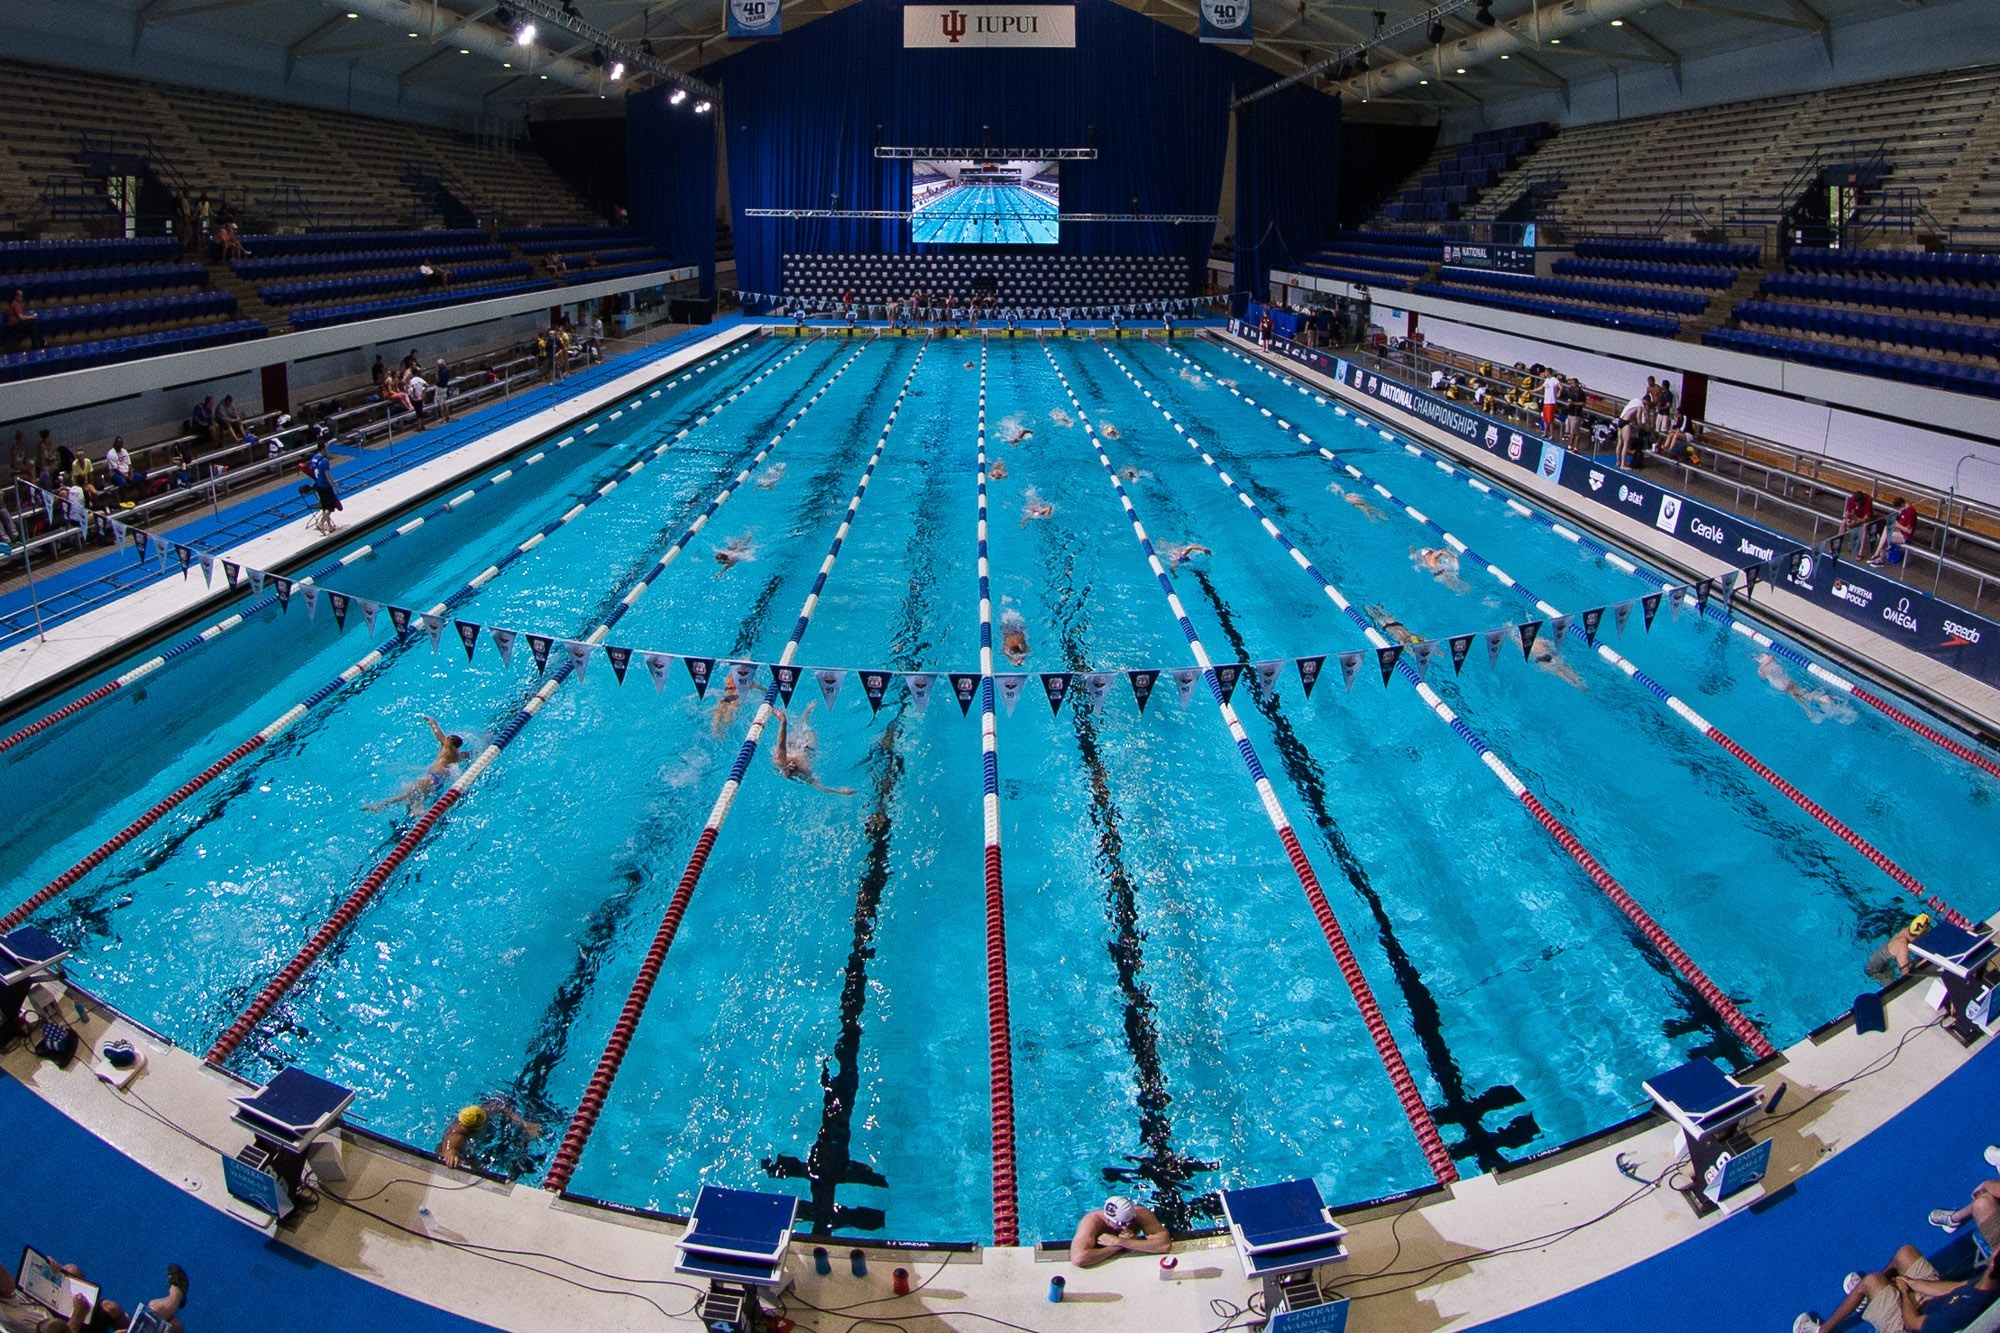 30 Million In Renovations Approved For Iupui Natatorium